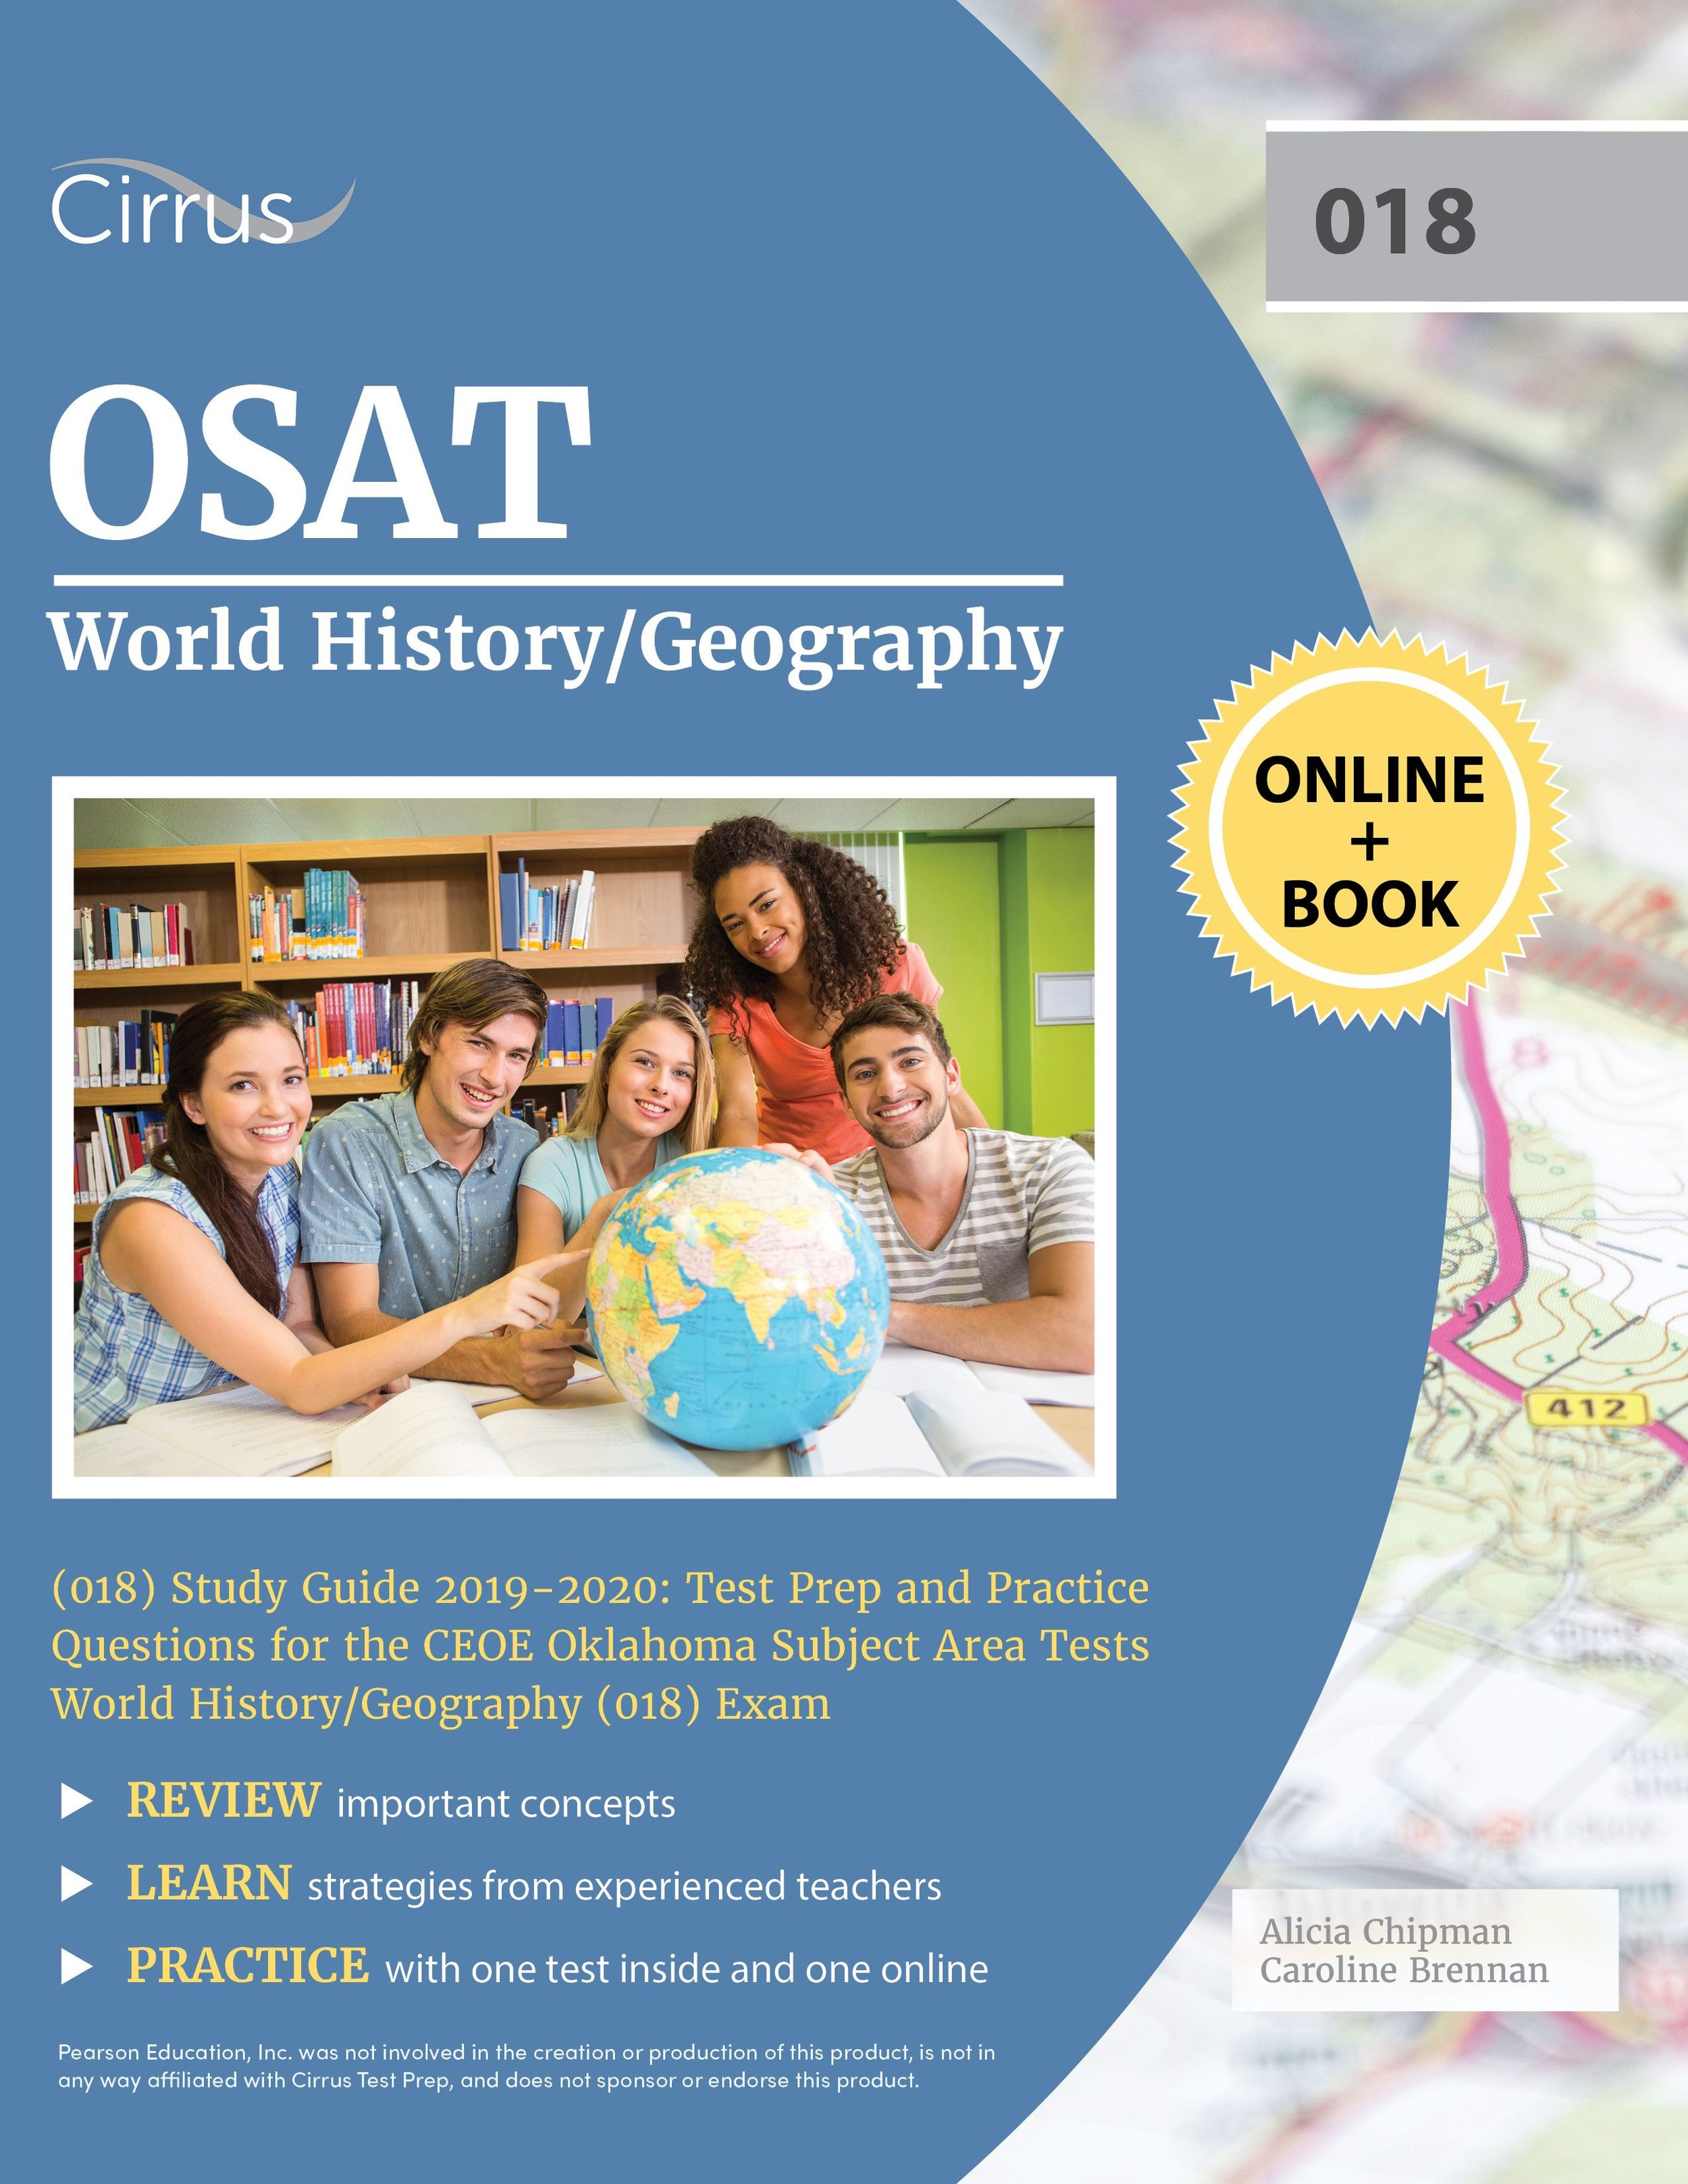 OSAT World History and Geography (018) Study Guide 2019 – 2020